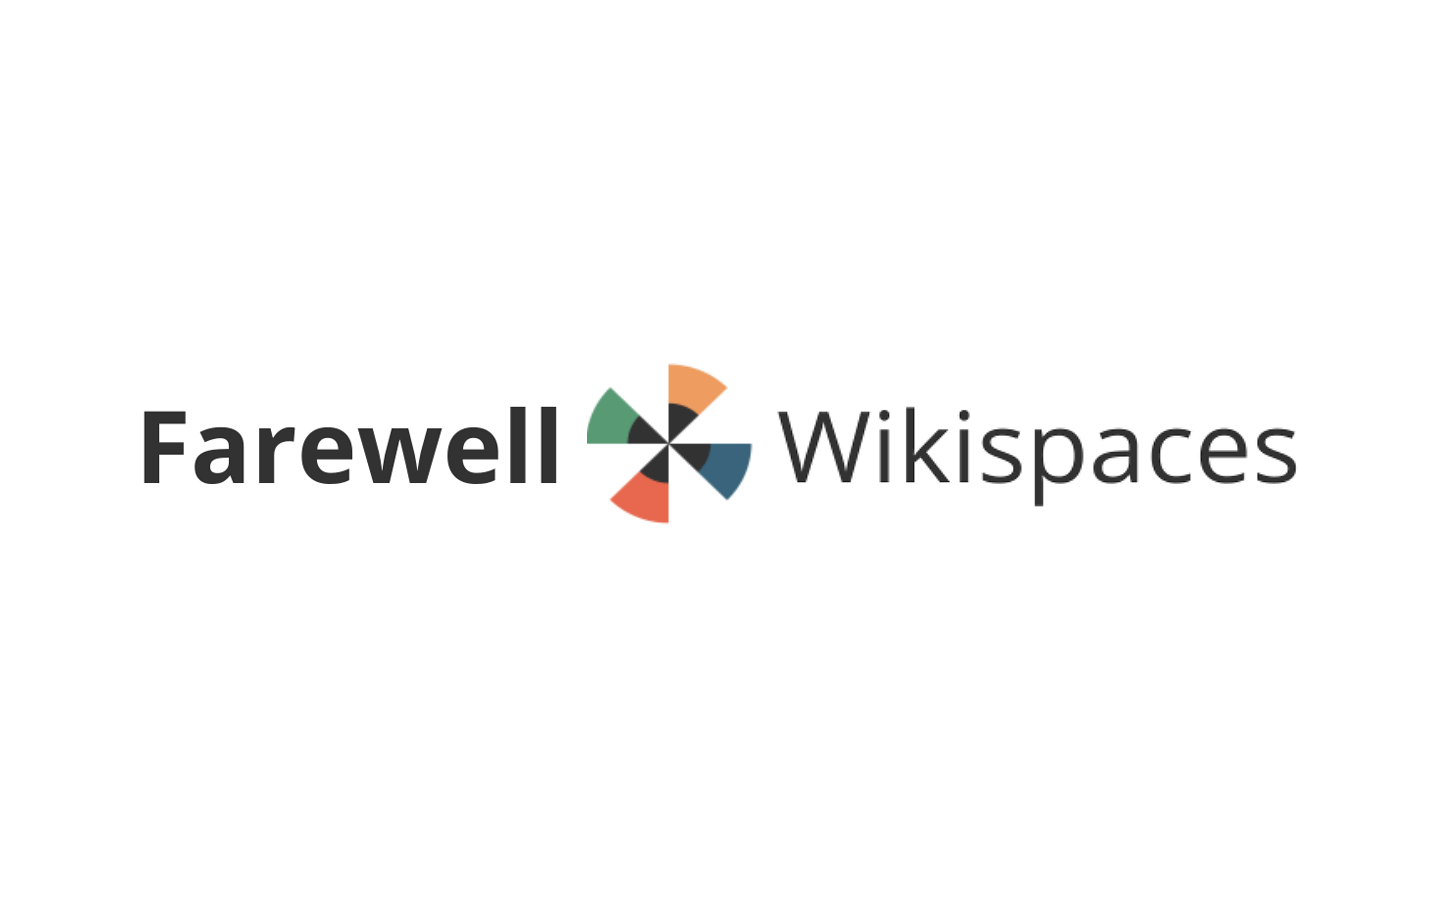 farewell wikispaces